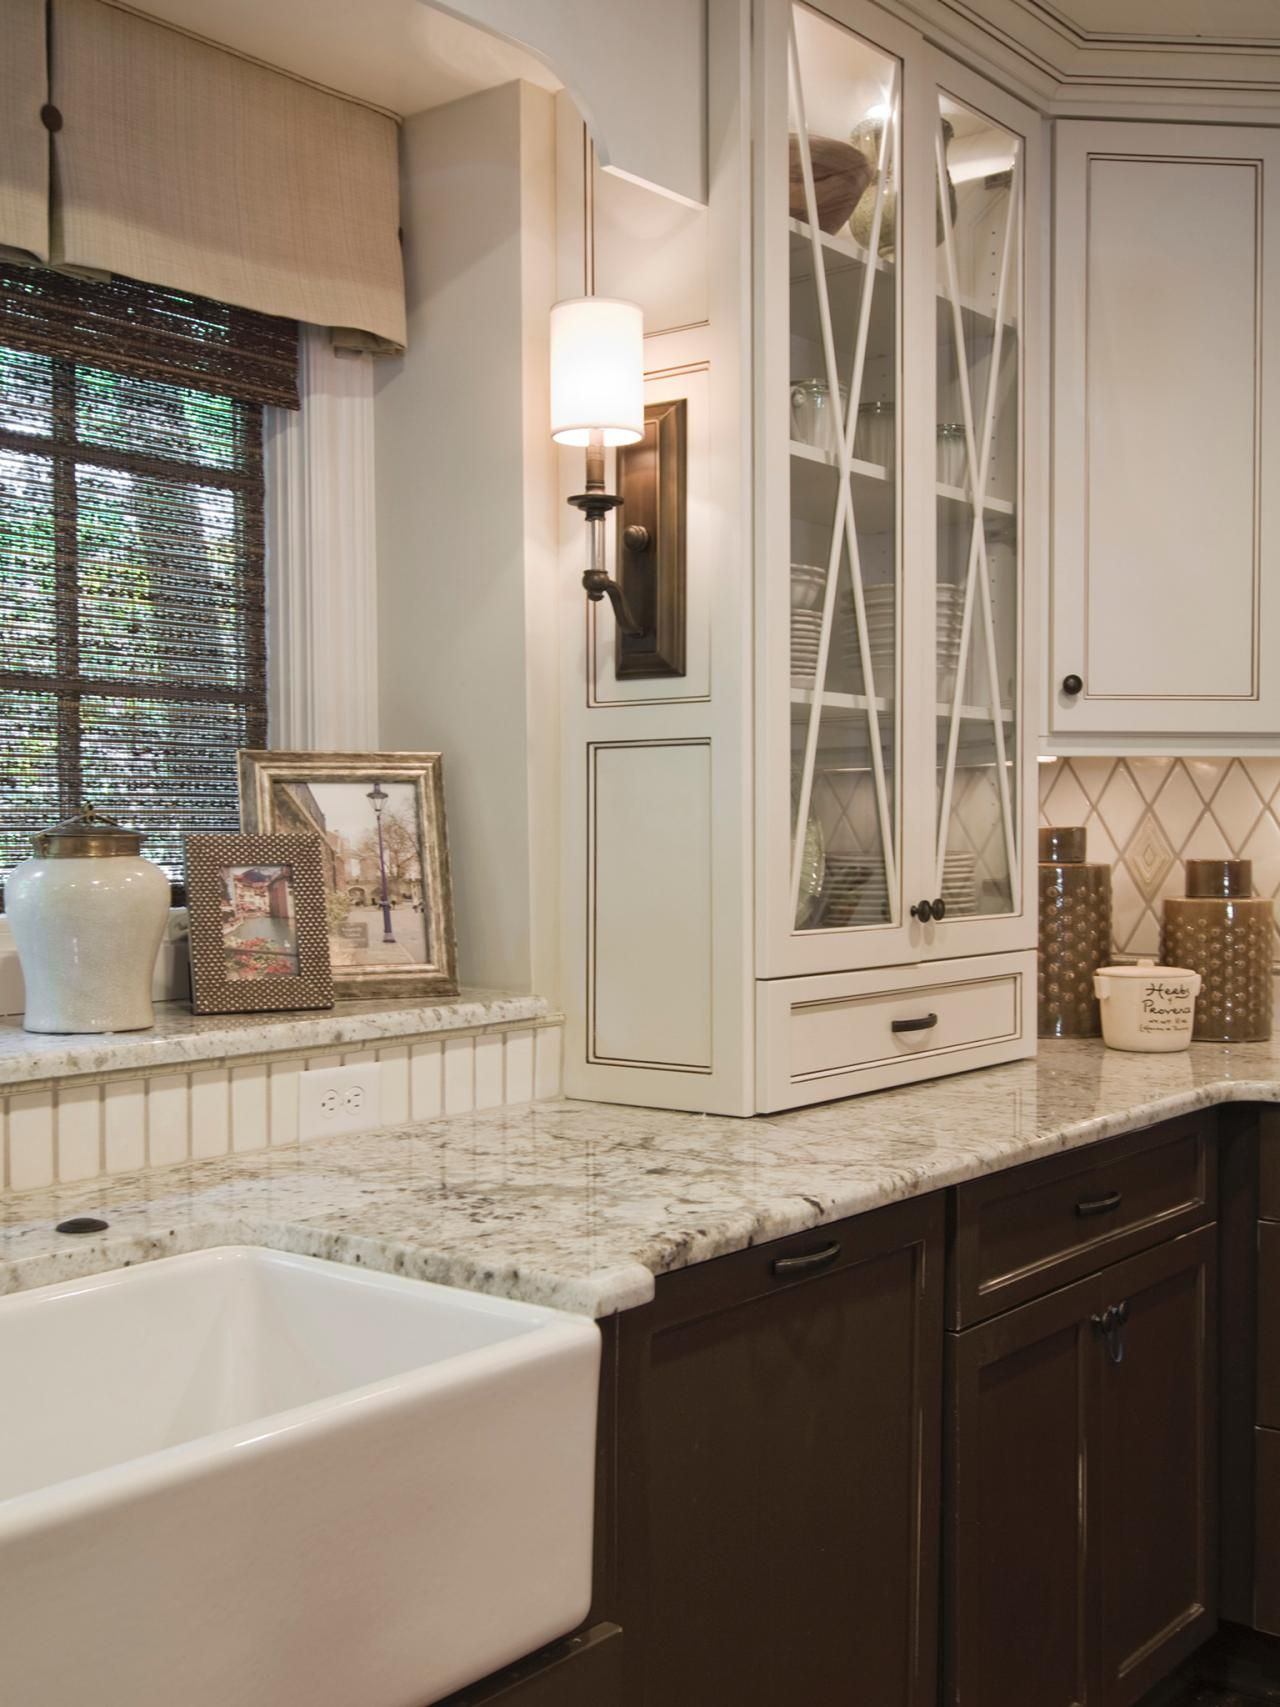 Remodeling Countertops Style Design Picture 2018